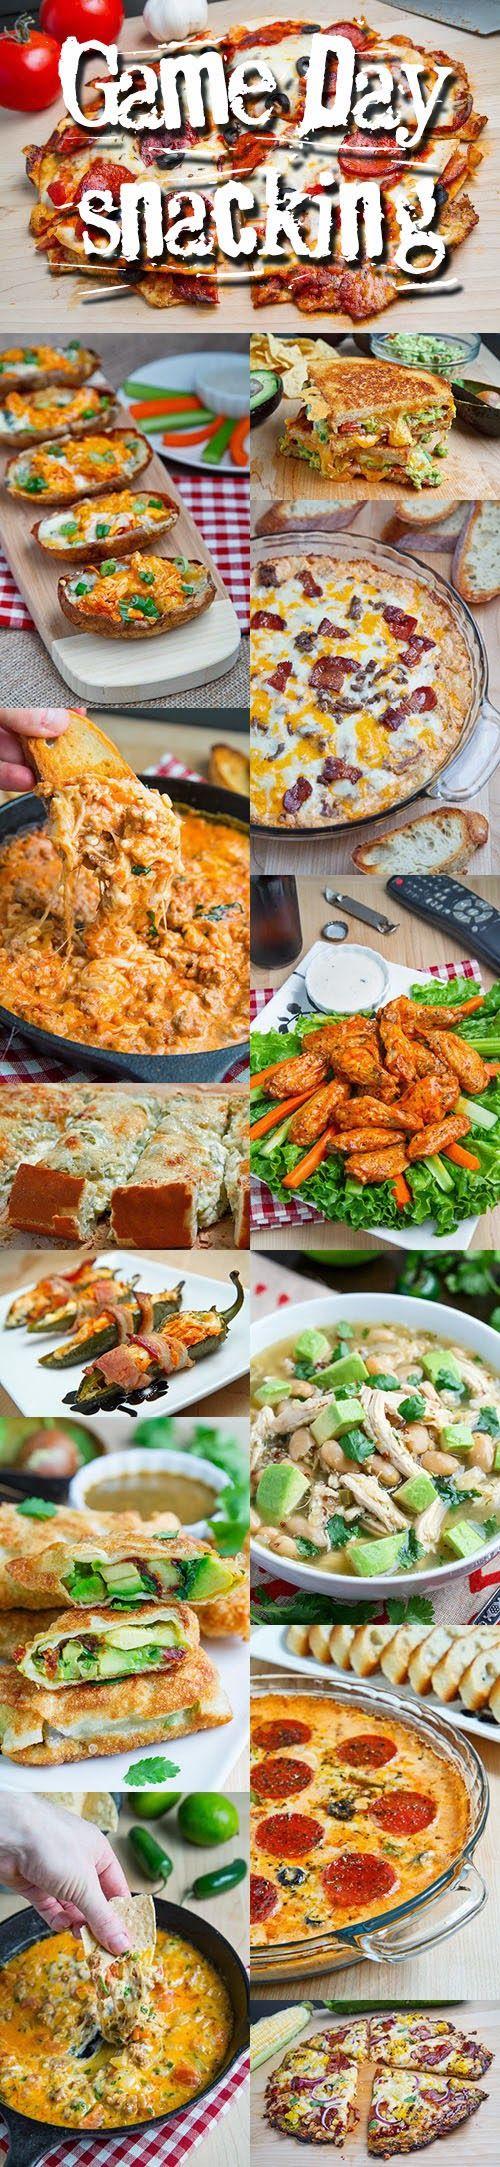 100 Game Day Snacks | Closet Cooking #SuperBowl #Football #GameDayGrub